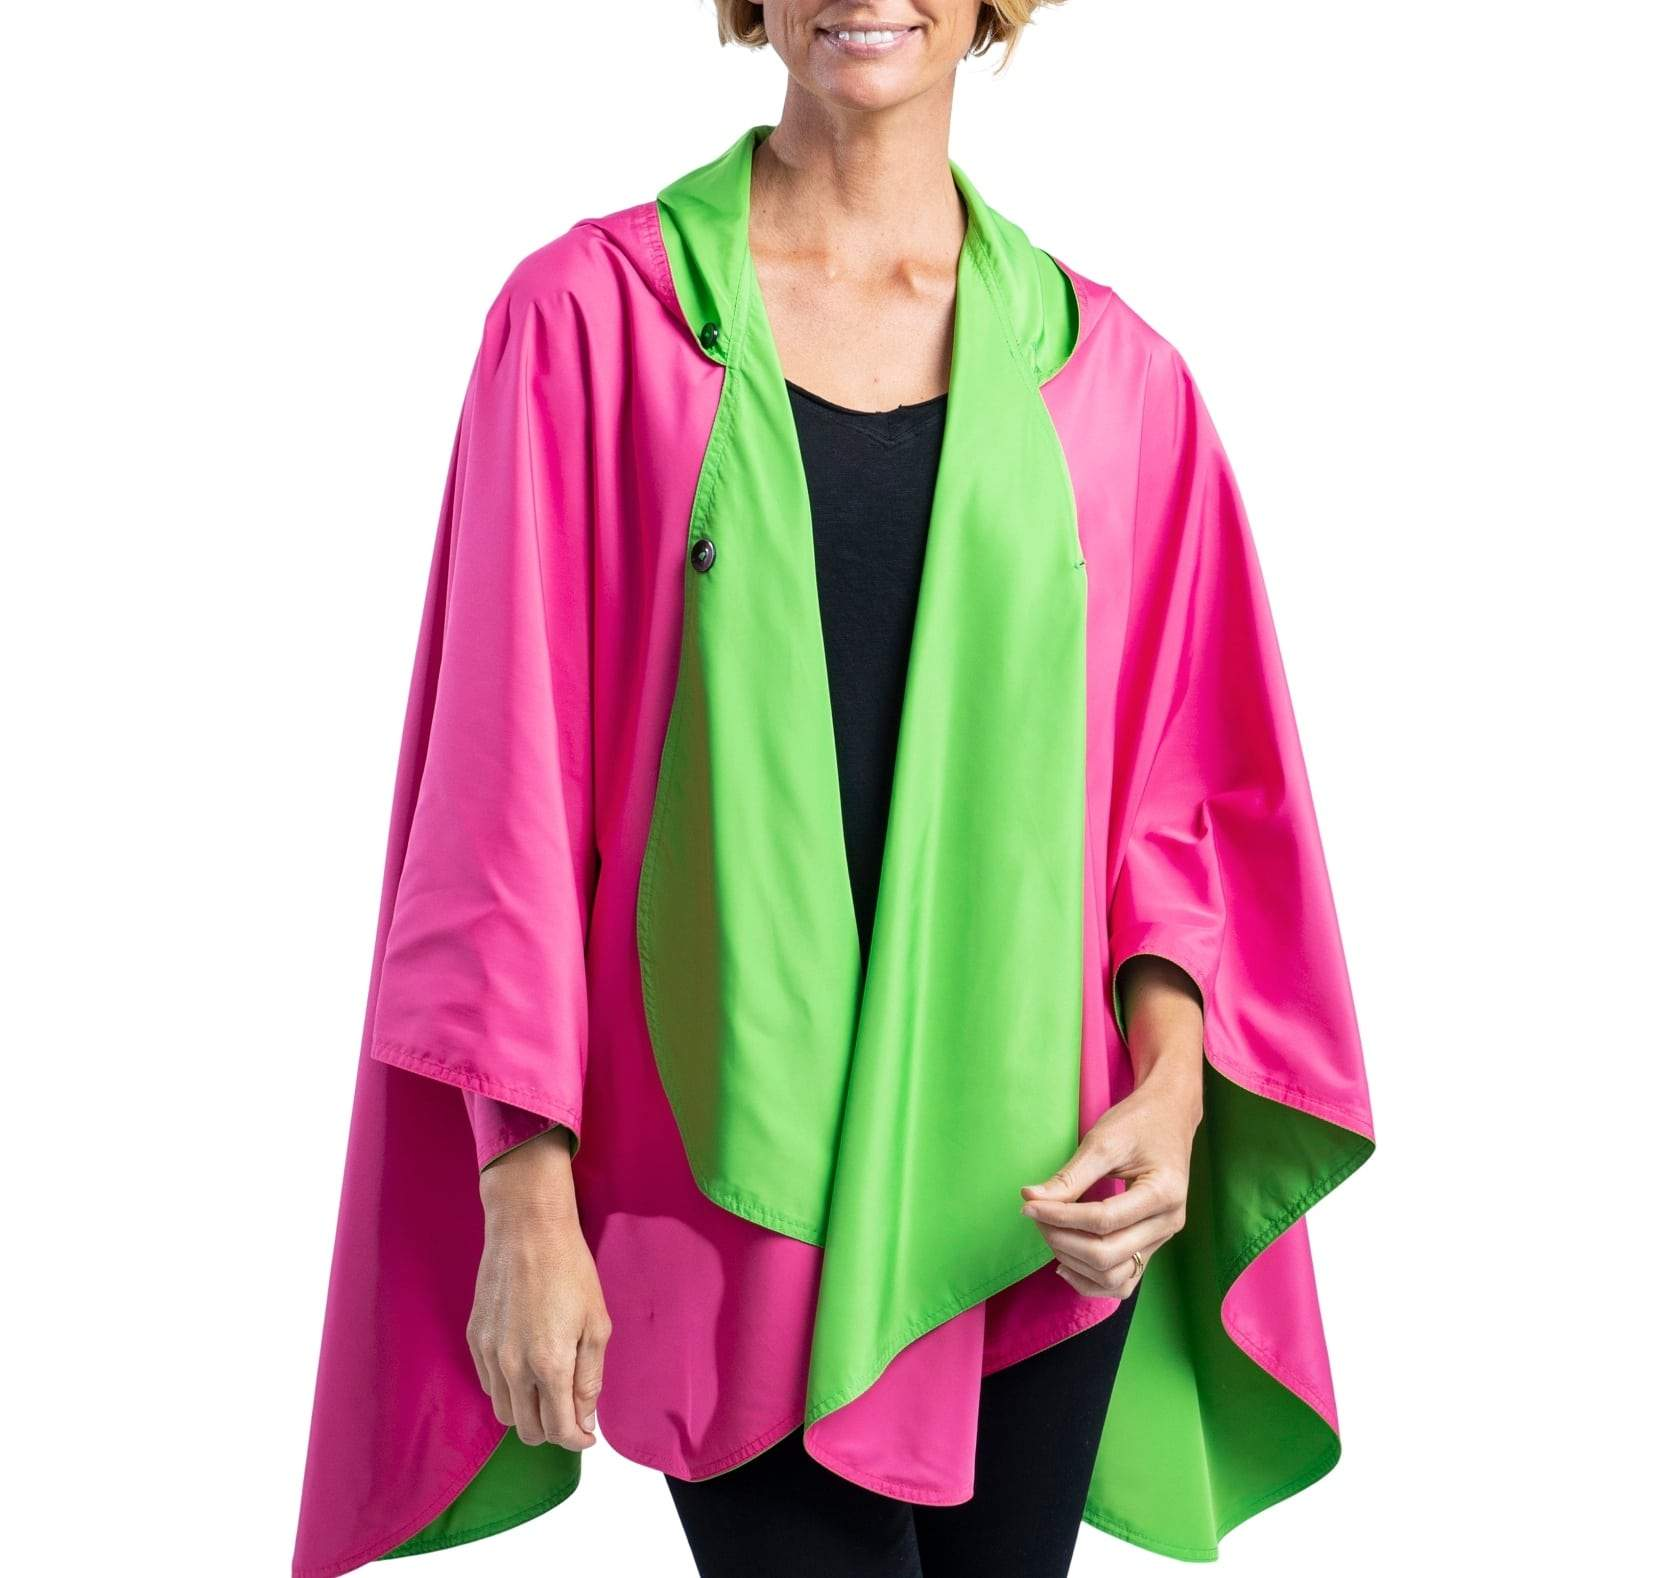 Women wearing a Hot Pink & Lime Green RainCaper travel cape with the Hot Pink side out, revealing the Lime Green color at the lapels and neck